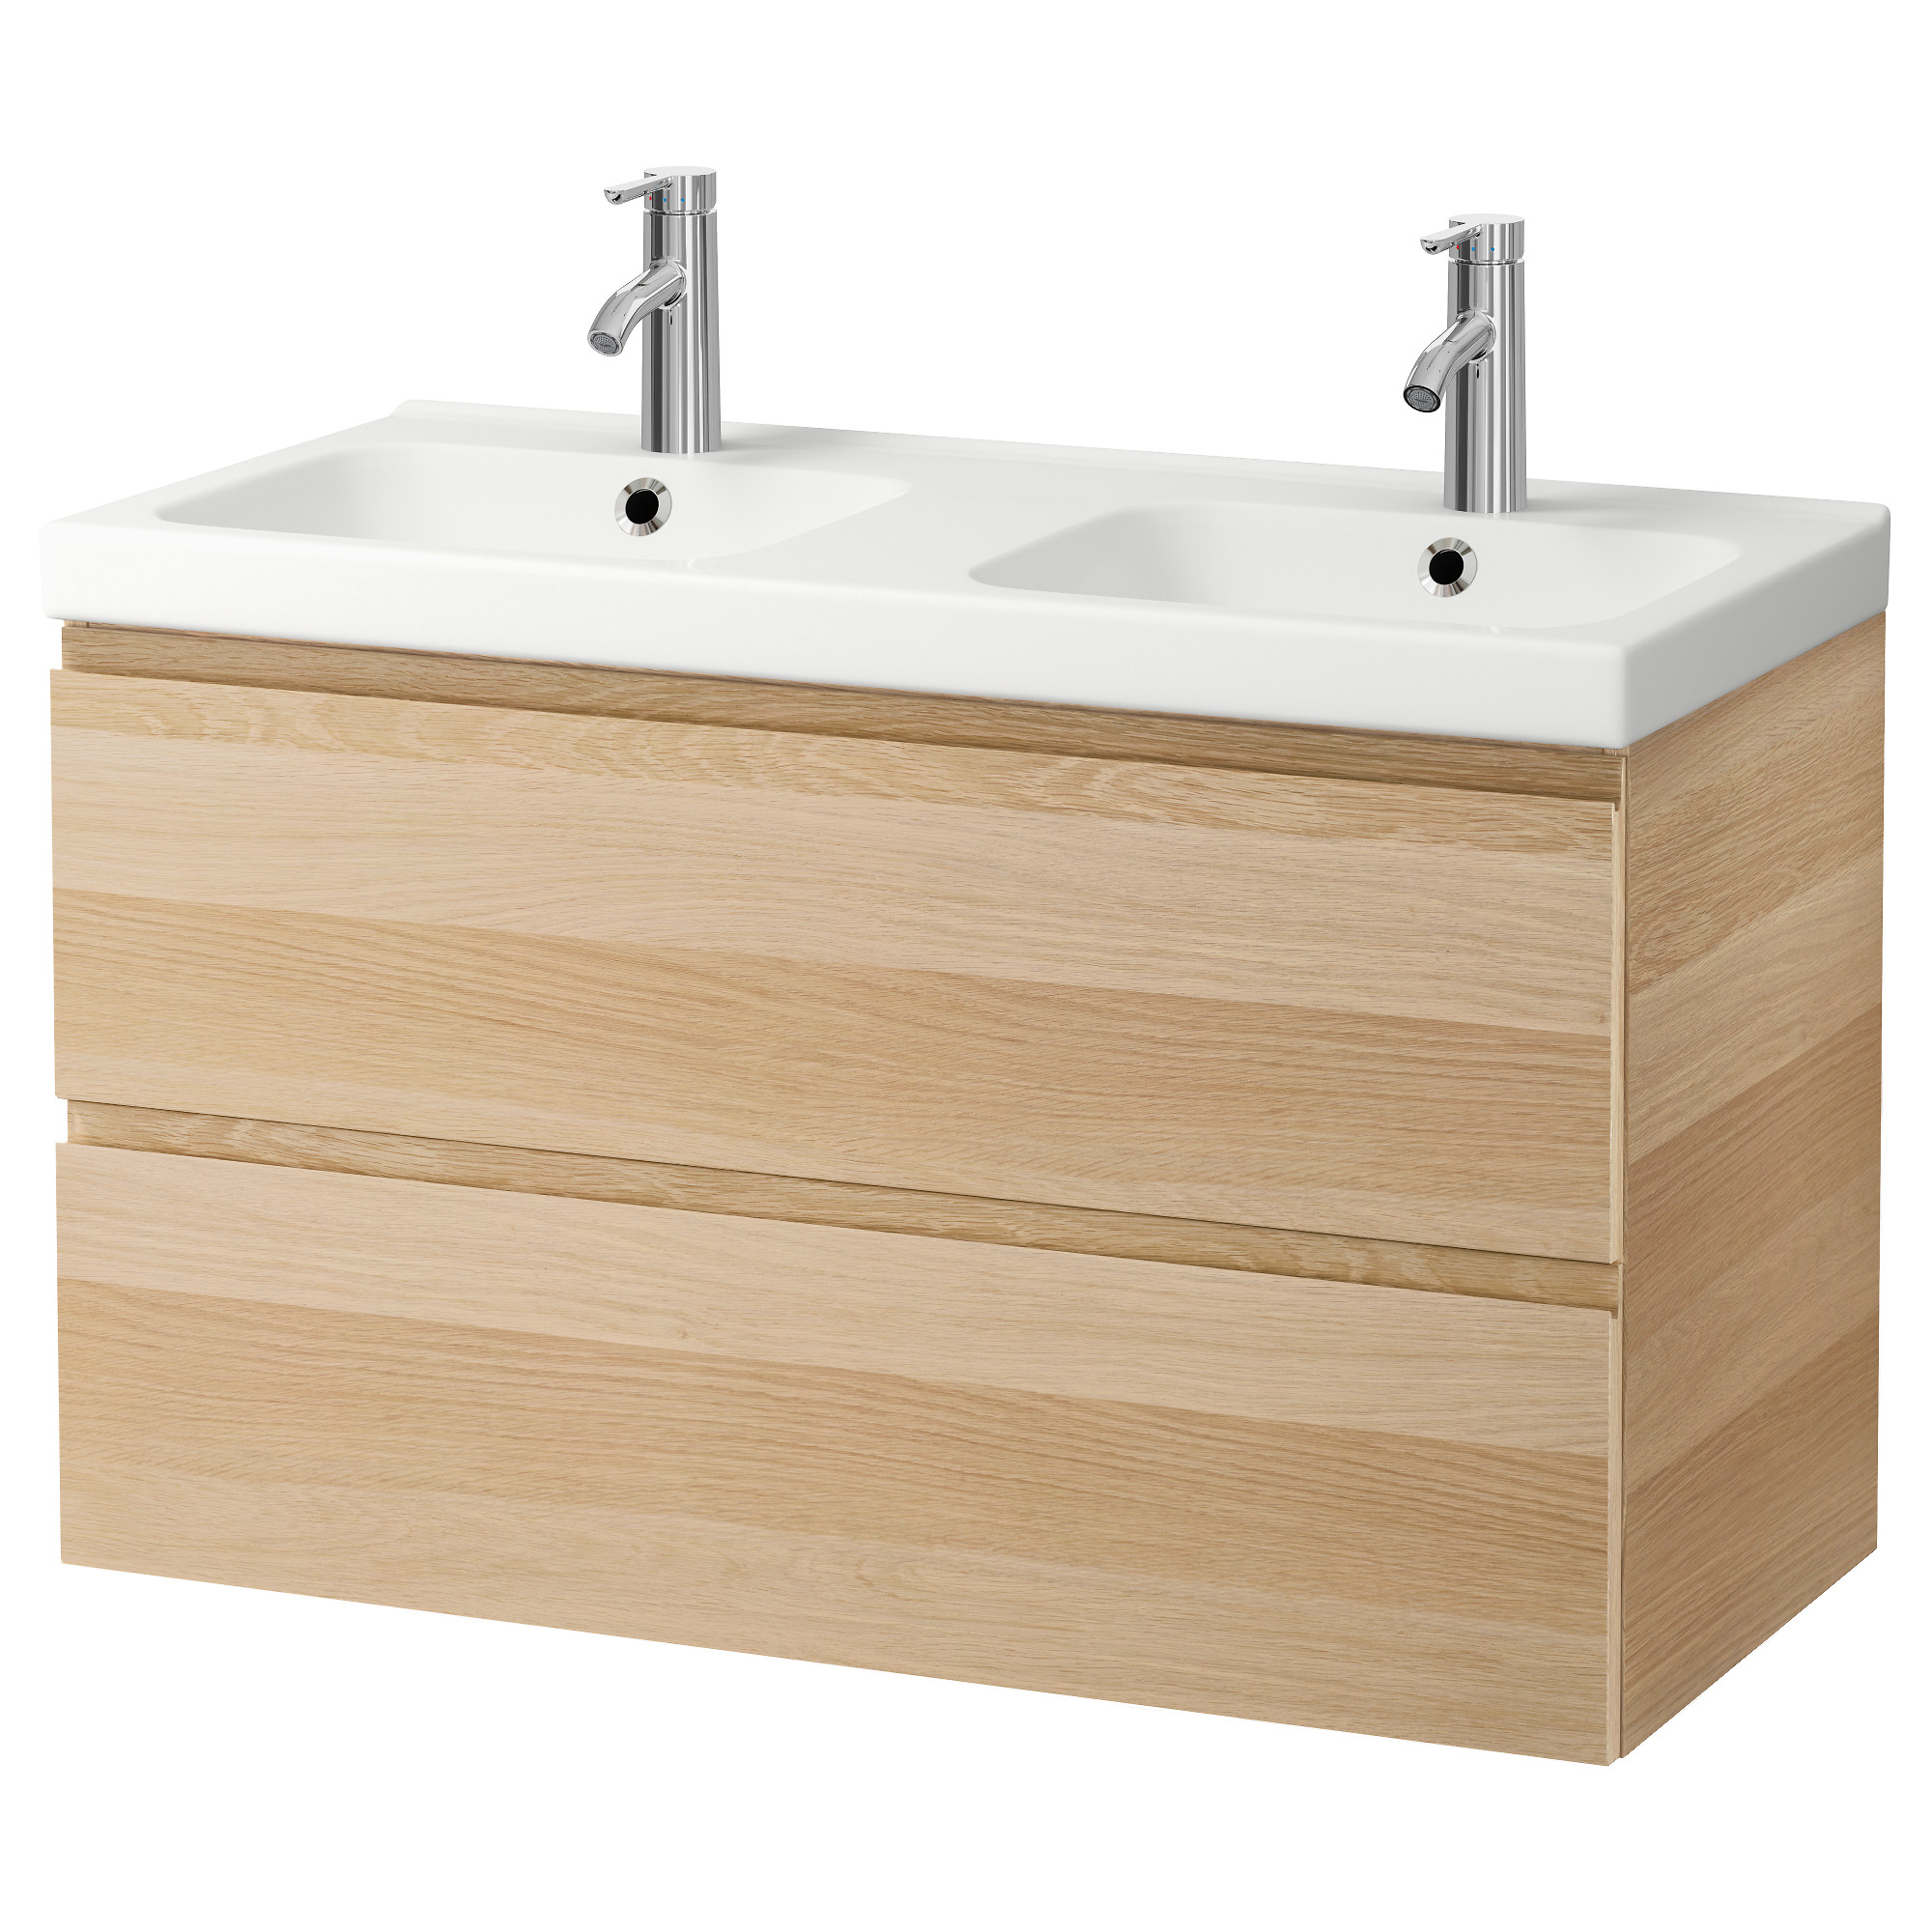 Morgon Odensvik Sink Cabinet With 2 Drawers White Stained Oak Effect 39 3 8x19 1 4x25 4 Ikea